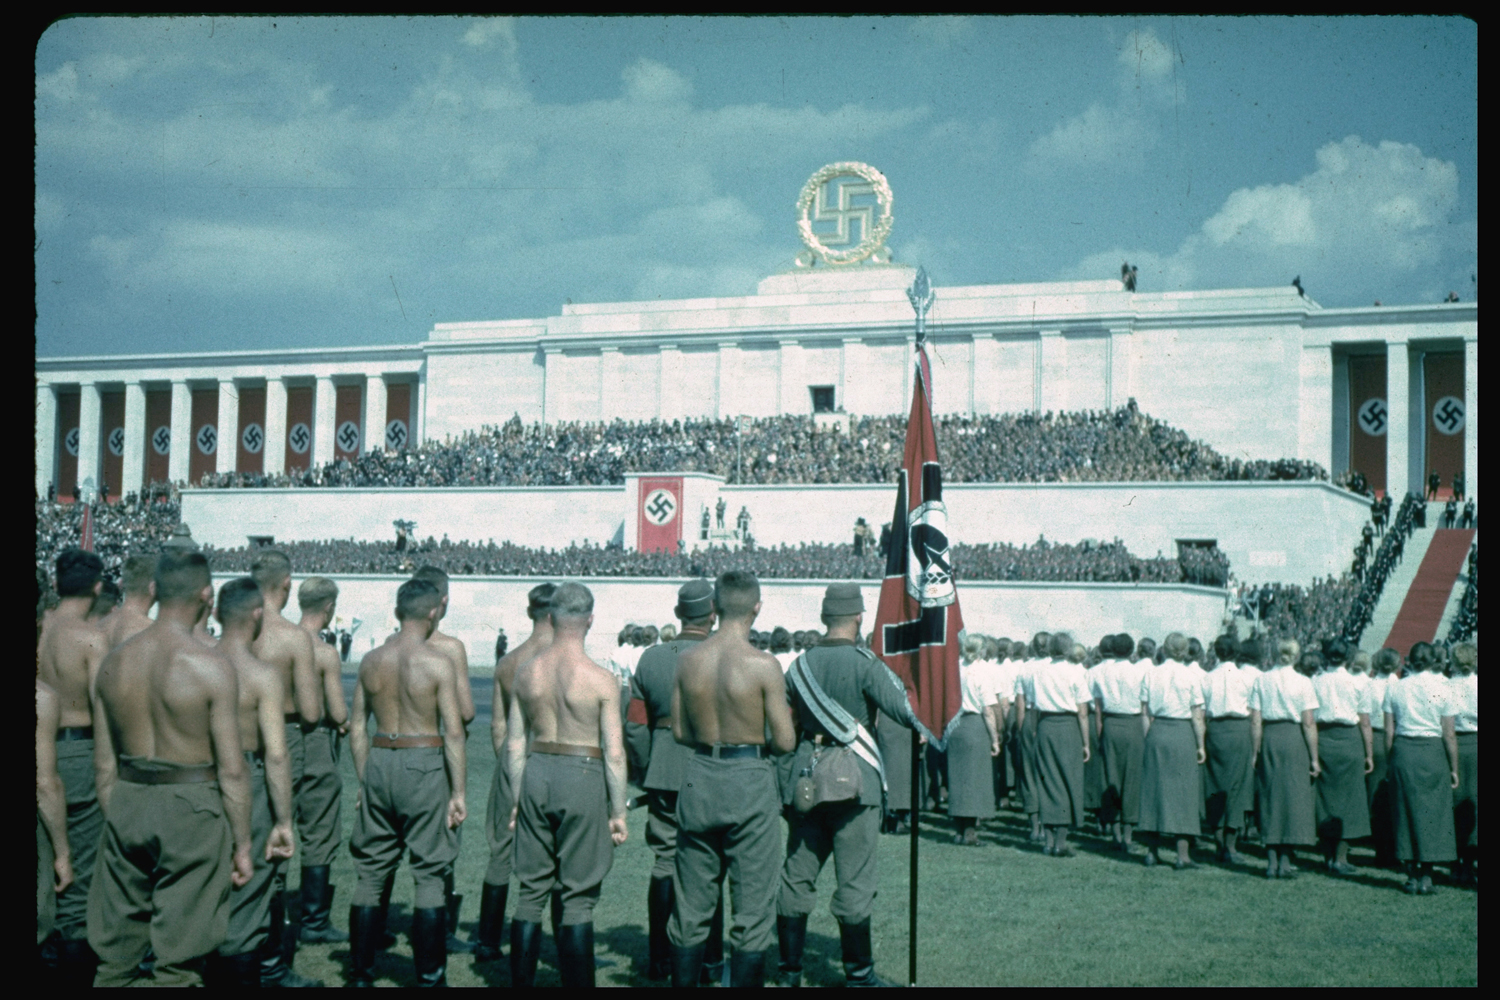 Nazi Party Congress in Nuremberg, Germany, 1937.